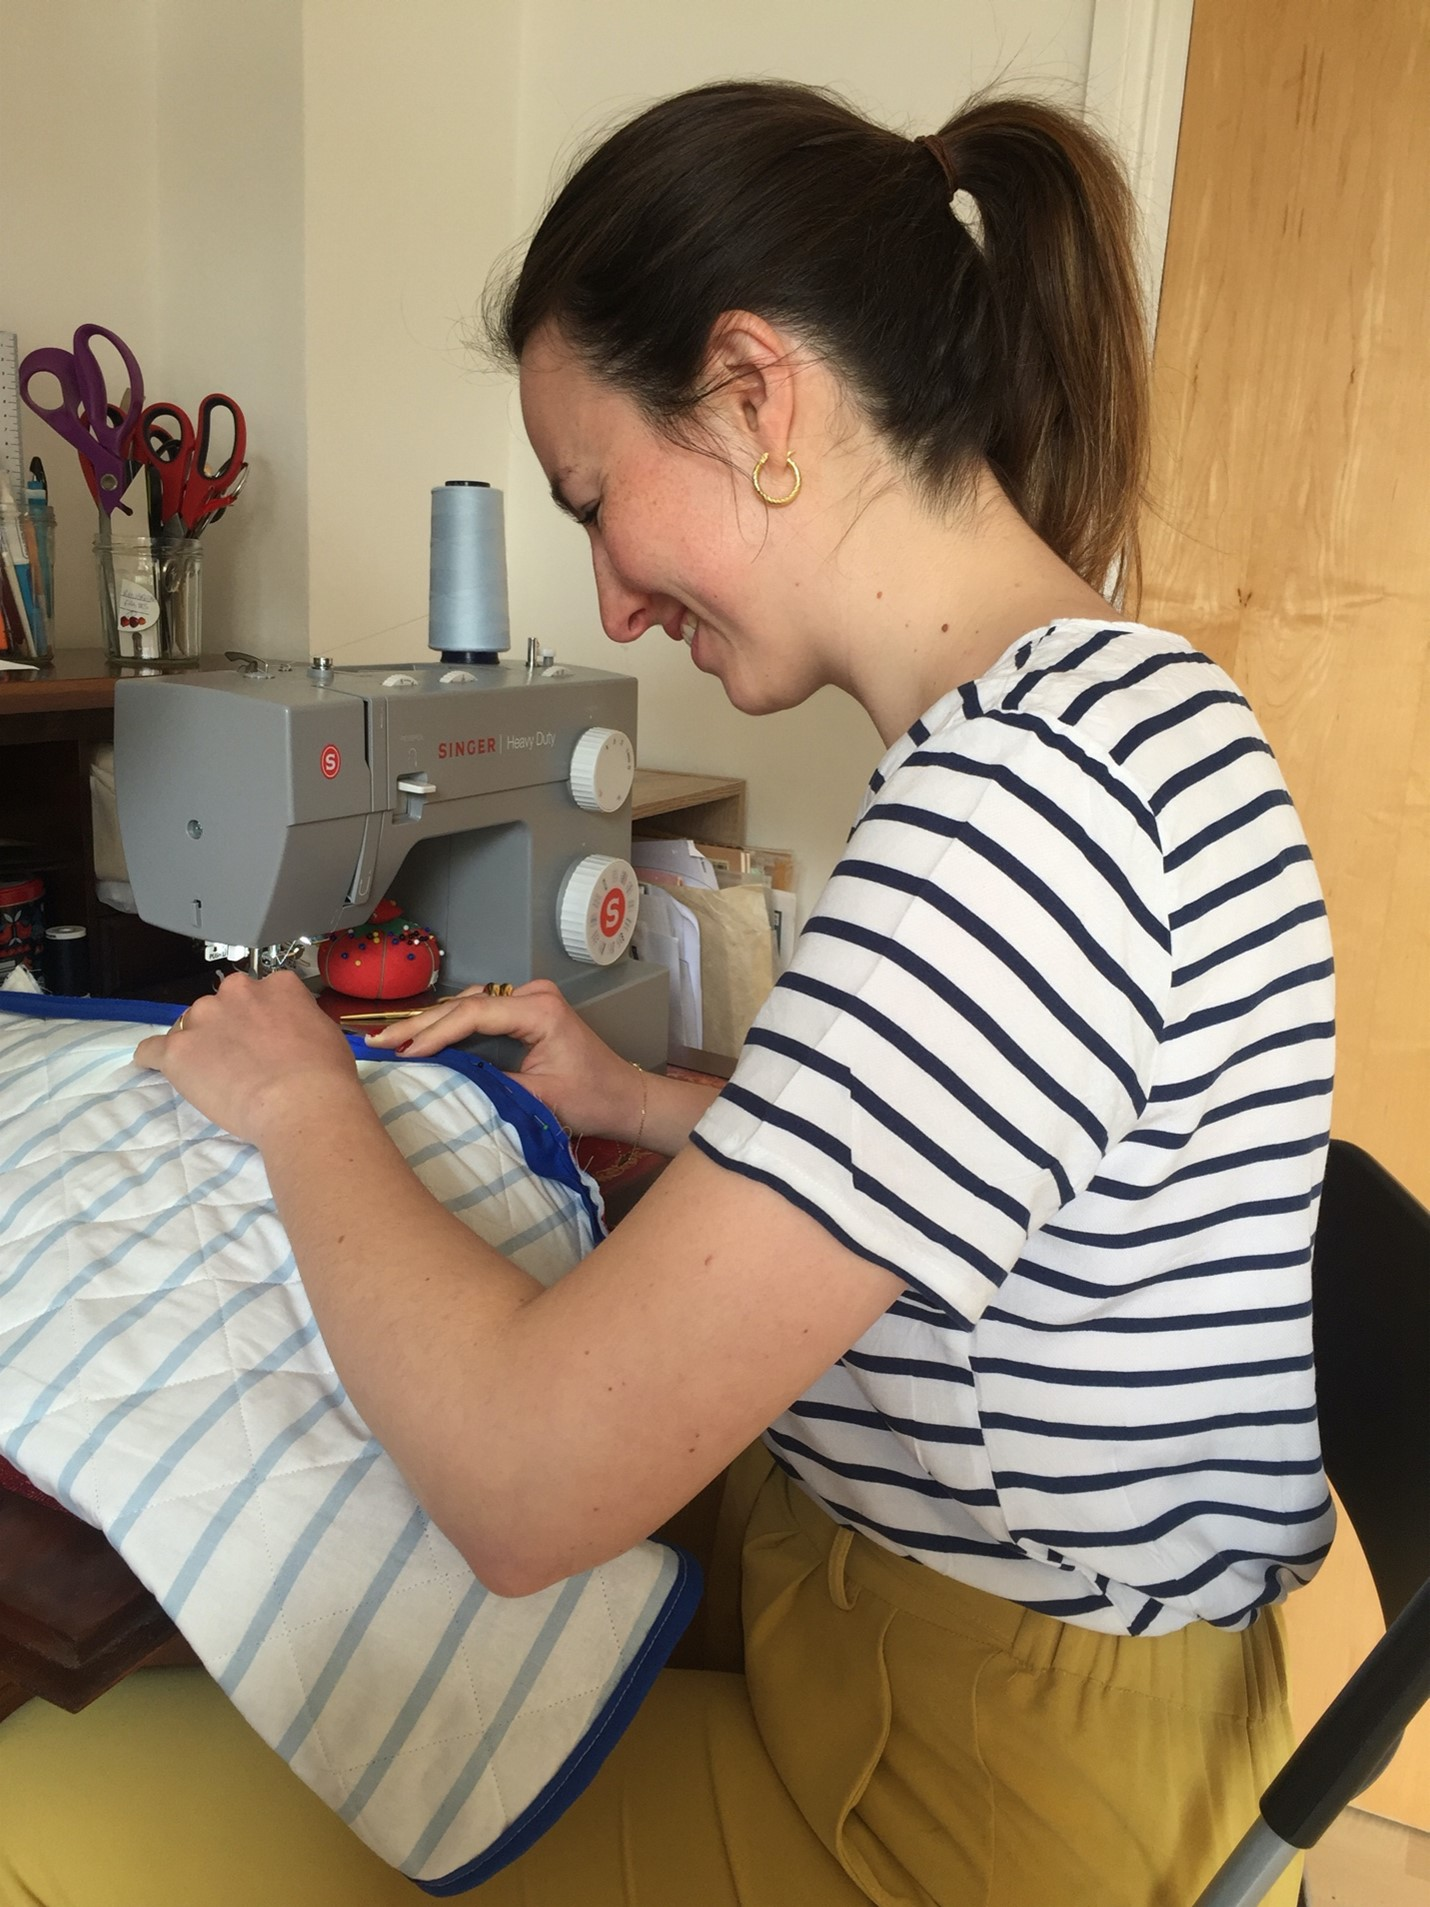 Marion Perrin working on her sewing machine